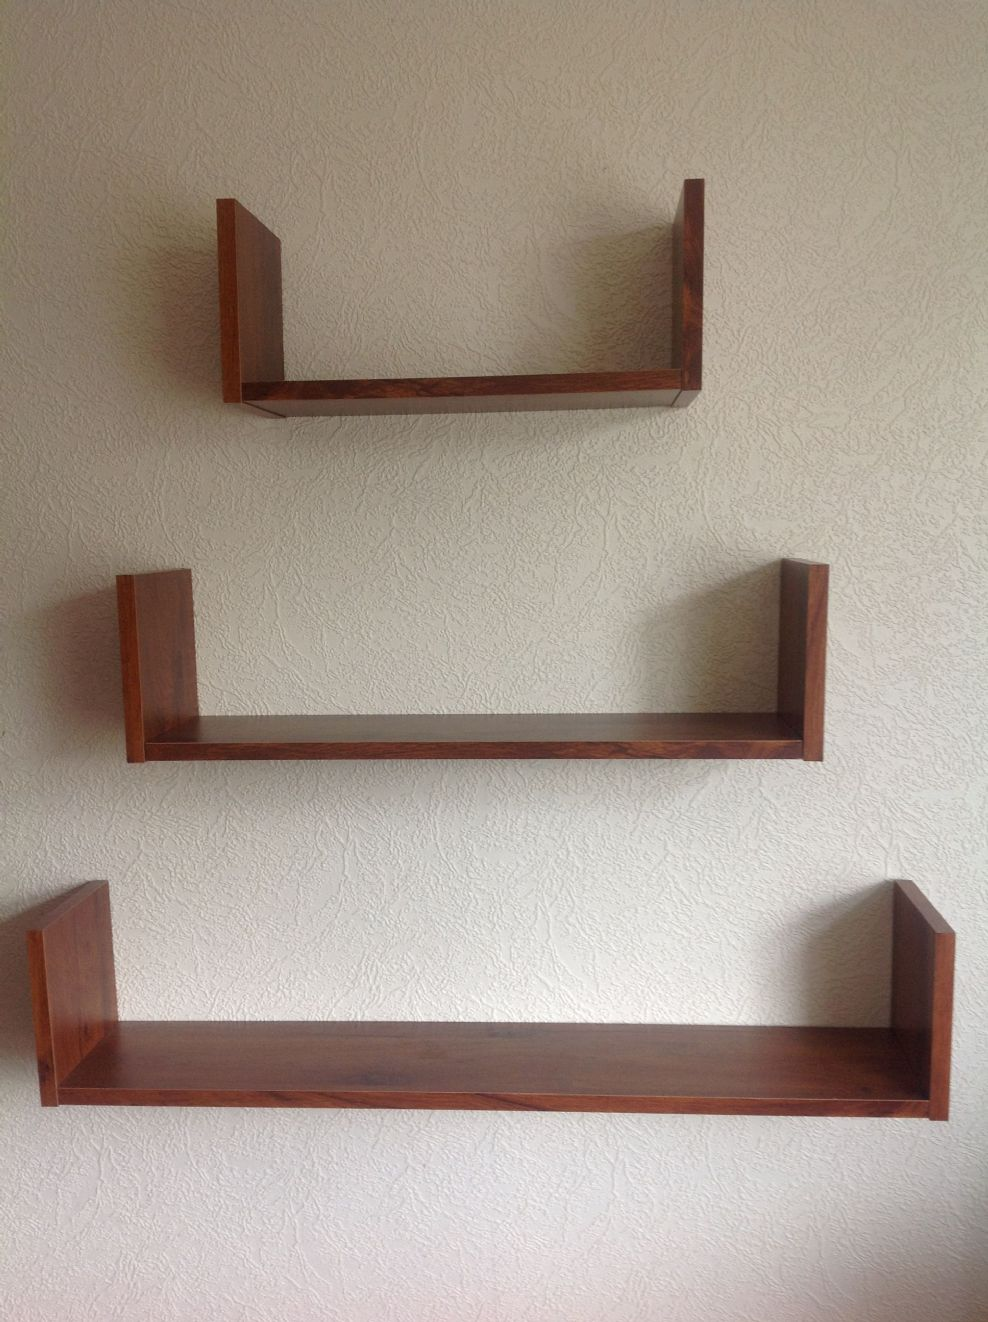 Cute Build Wall Mounted Bookshelf How To Build Wall Mounted Bookshelves Build Wall Mounted Bookshelves Build Wall Mounted Bookshelves Wall Mounted Bookshelves interior Build Wall Mounted Bookshelves